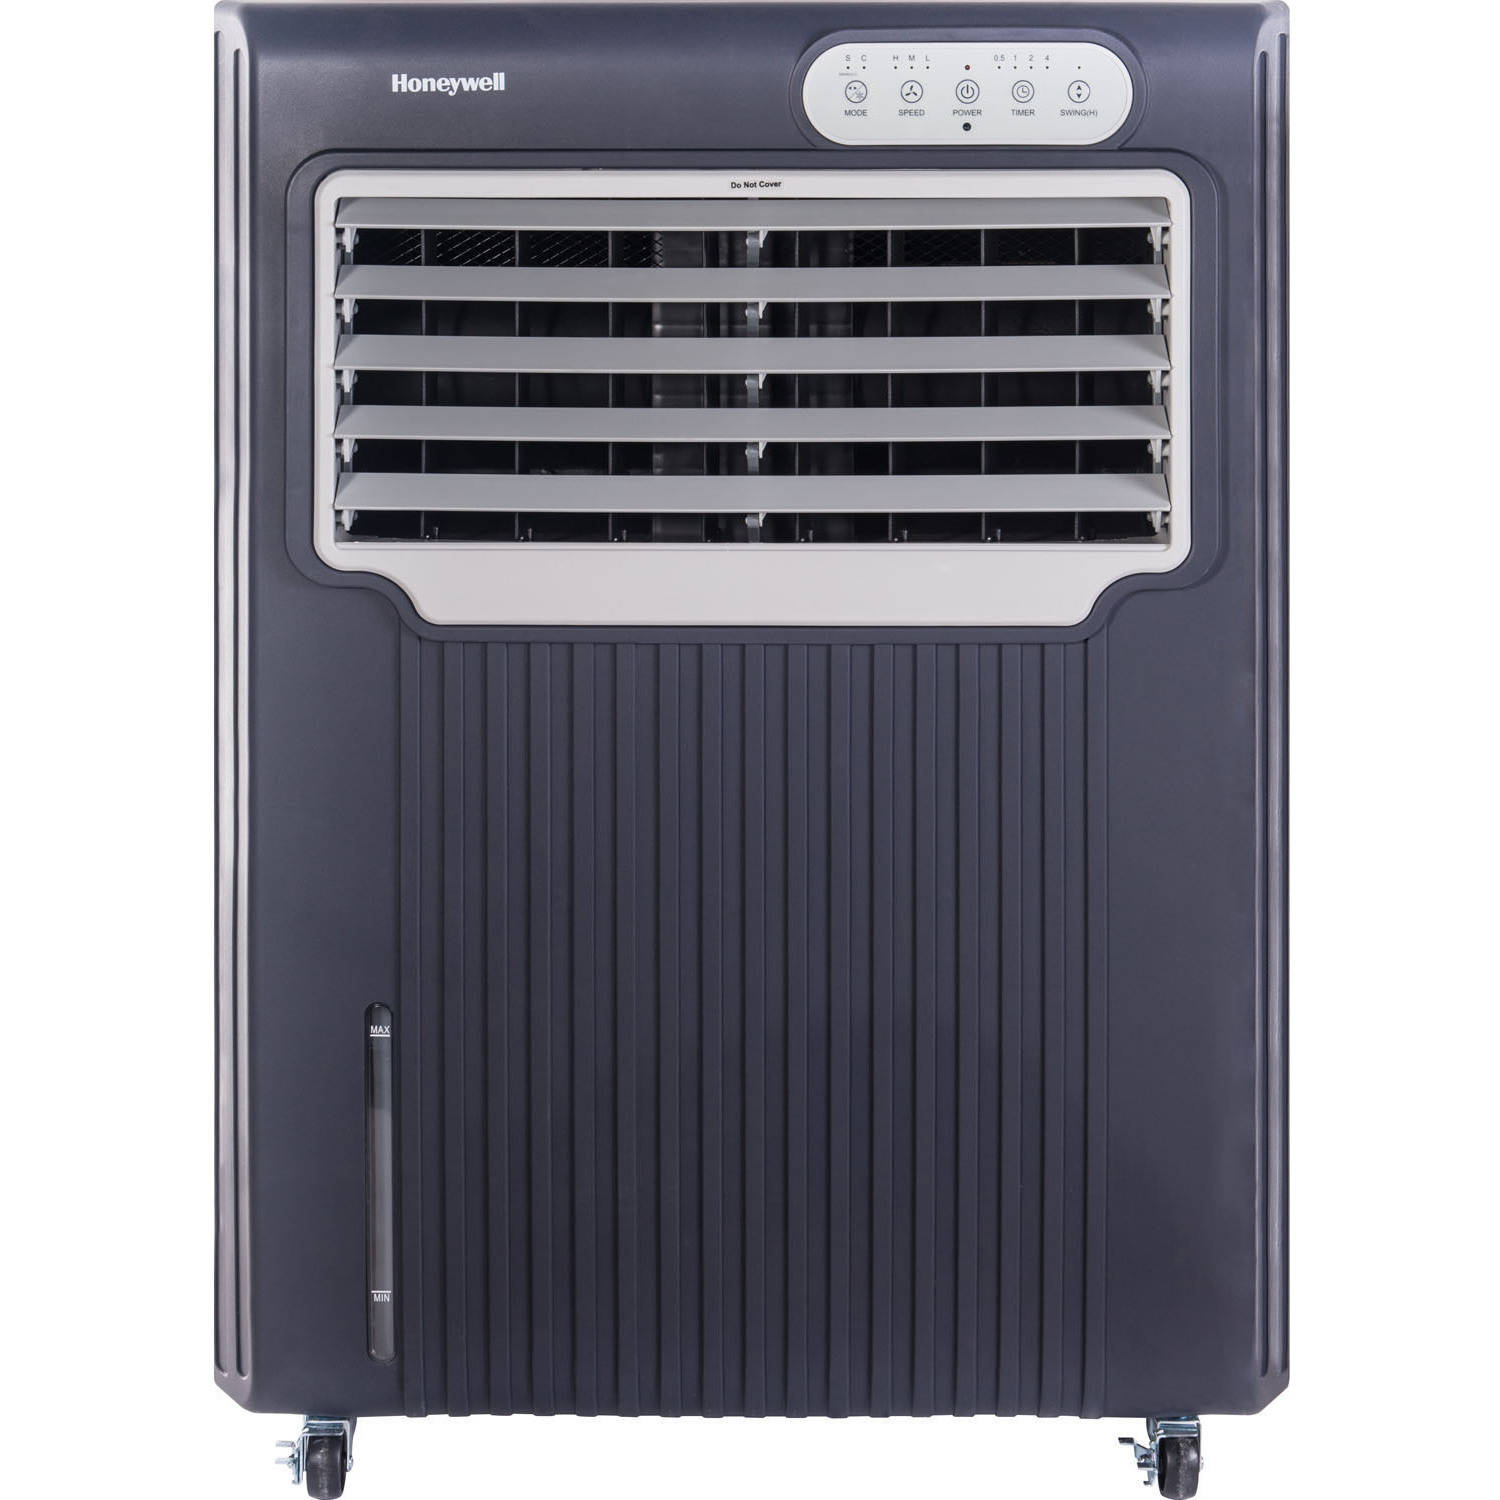 Honeywell CO70PE 588 CFM 342 sq. ft. Indoor/Outdoor Portable Evaporative Air Cooler (Swamp Cooler) with Remote Control, Gray/White